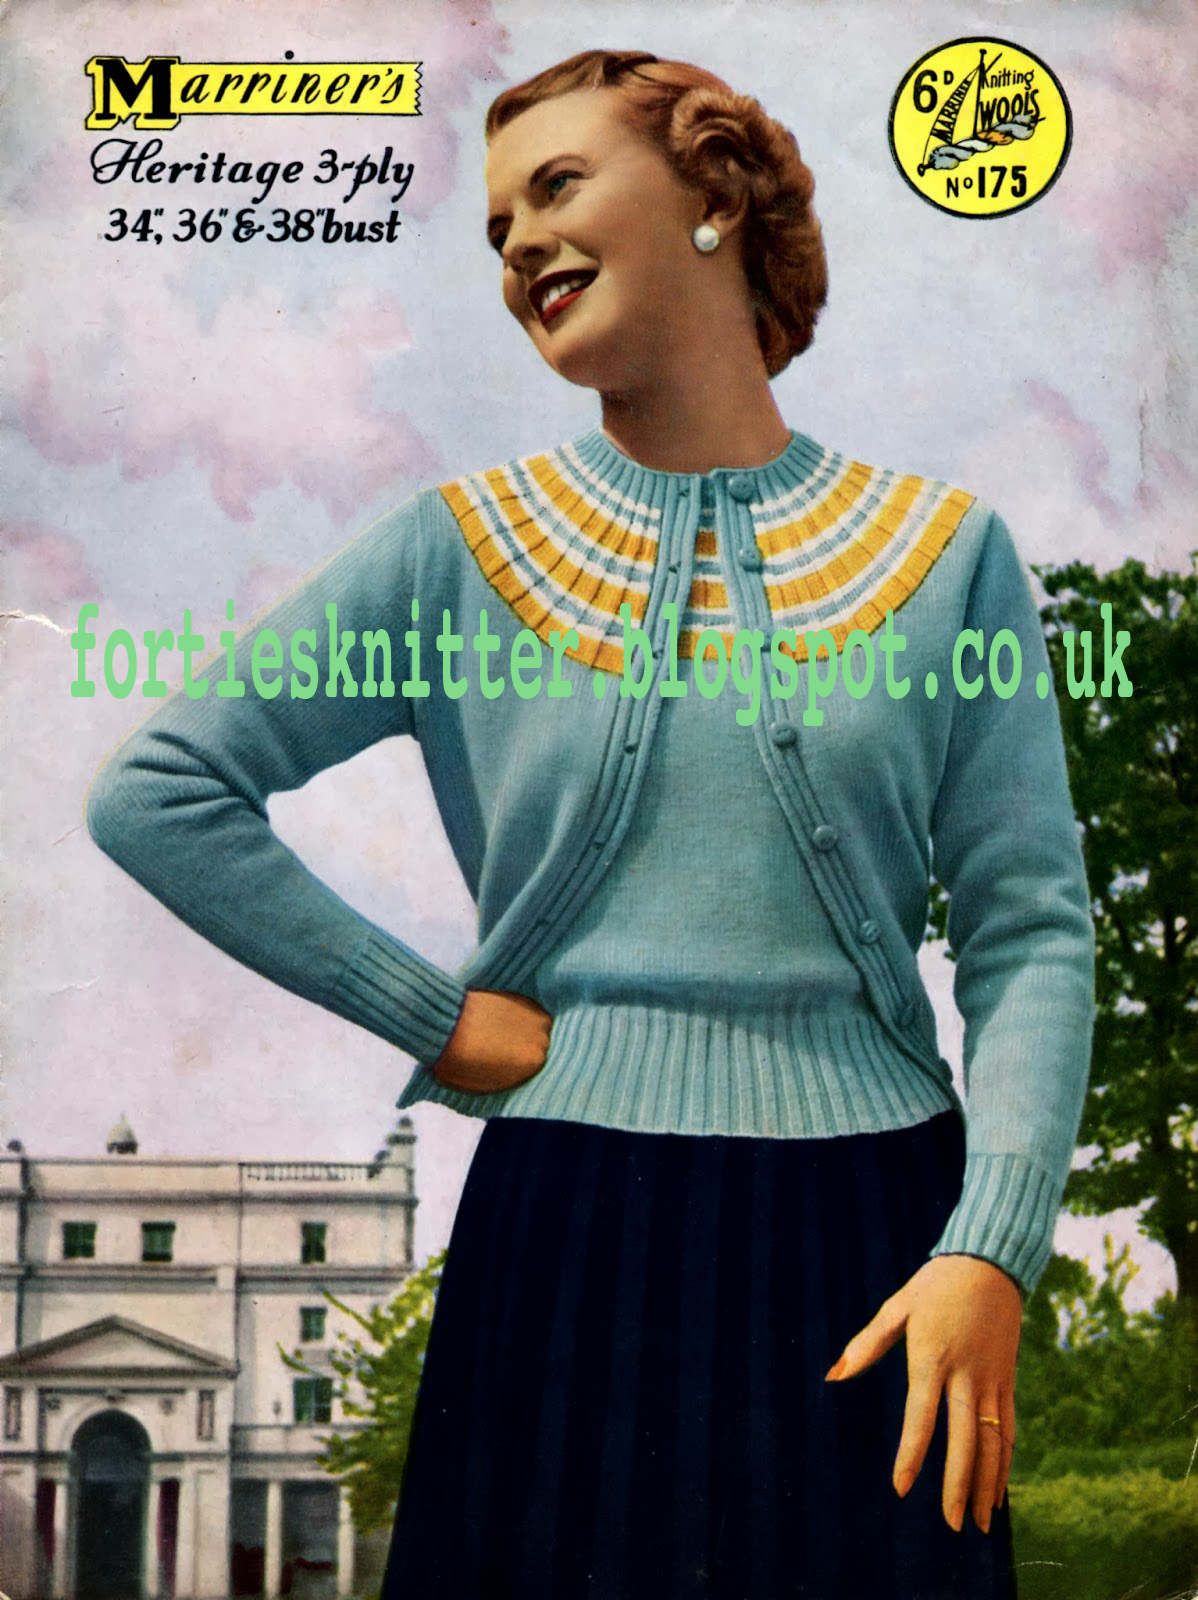 1950's Knitting - Mariner's No.175 Twinset free knitting pattern